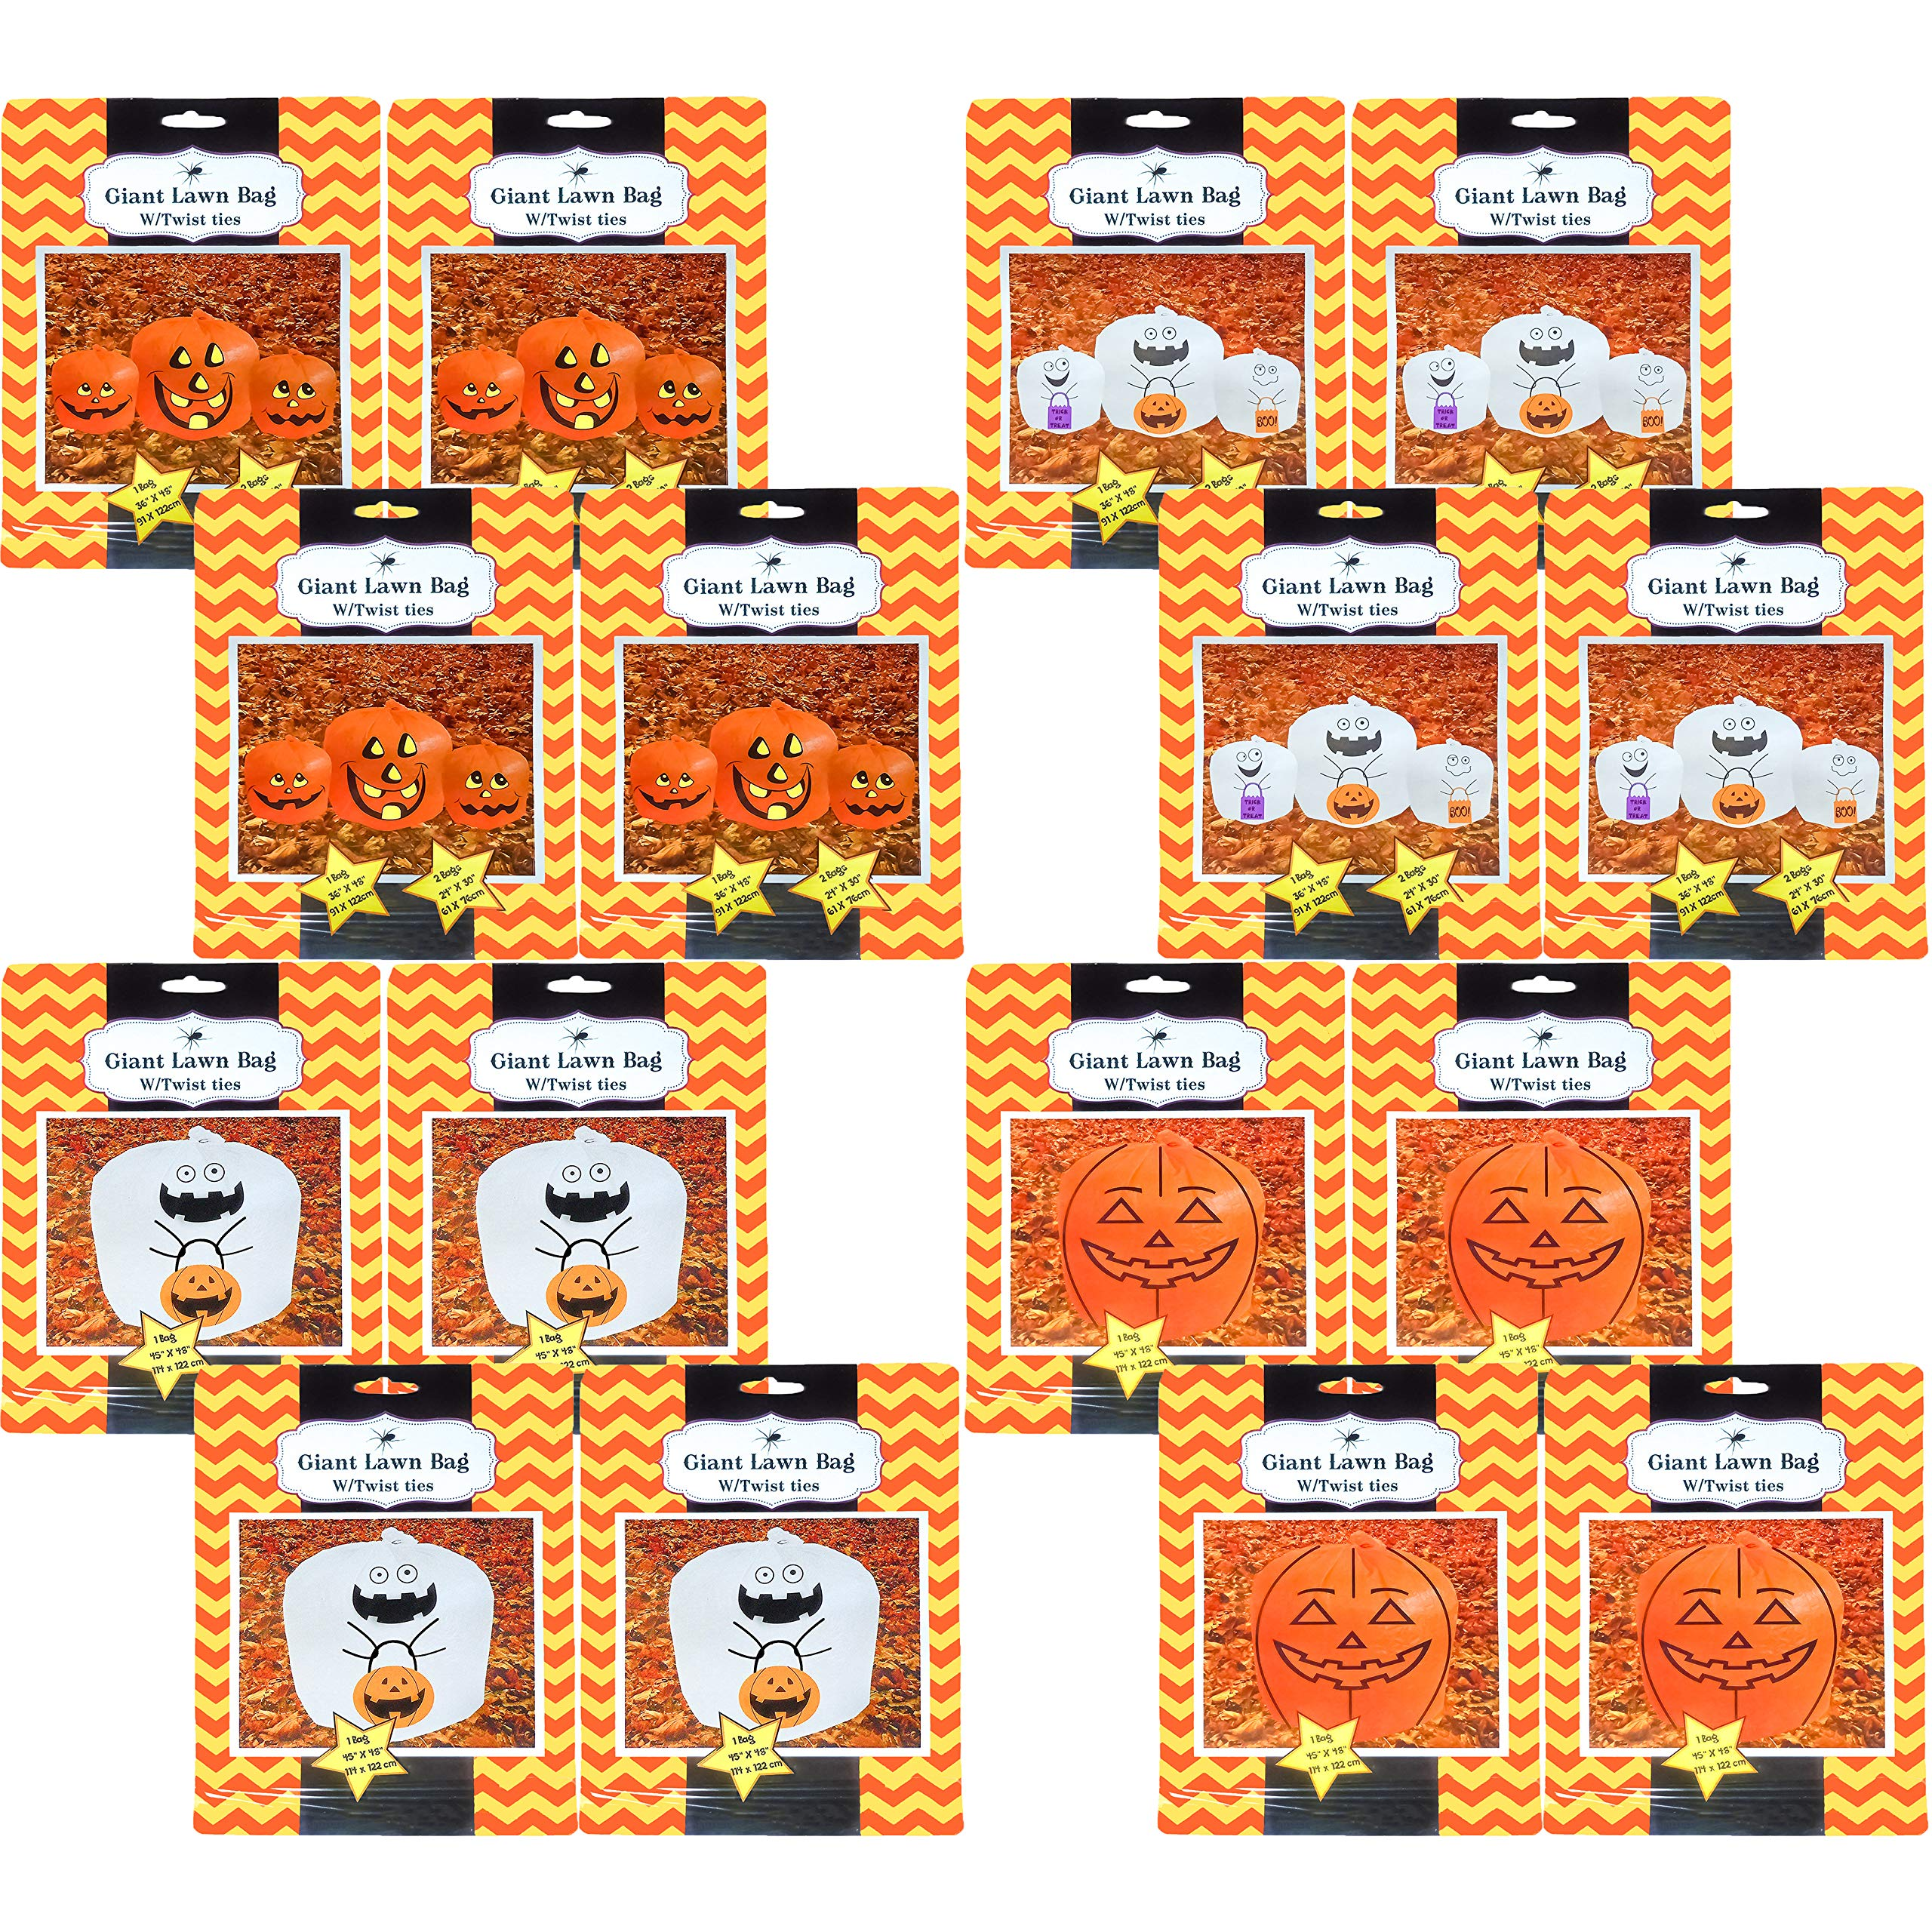 Black Duck Brand Halloween Decorative Giant Lawn Bags with Twist Ties (Pumpkin & Ghost) (16 Bags) by Black Duck Brand